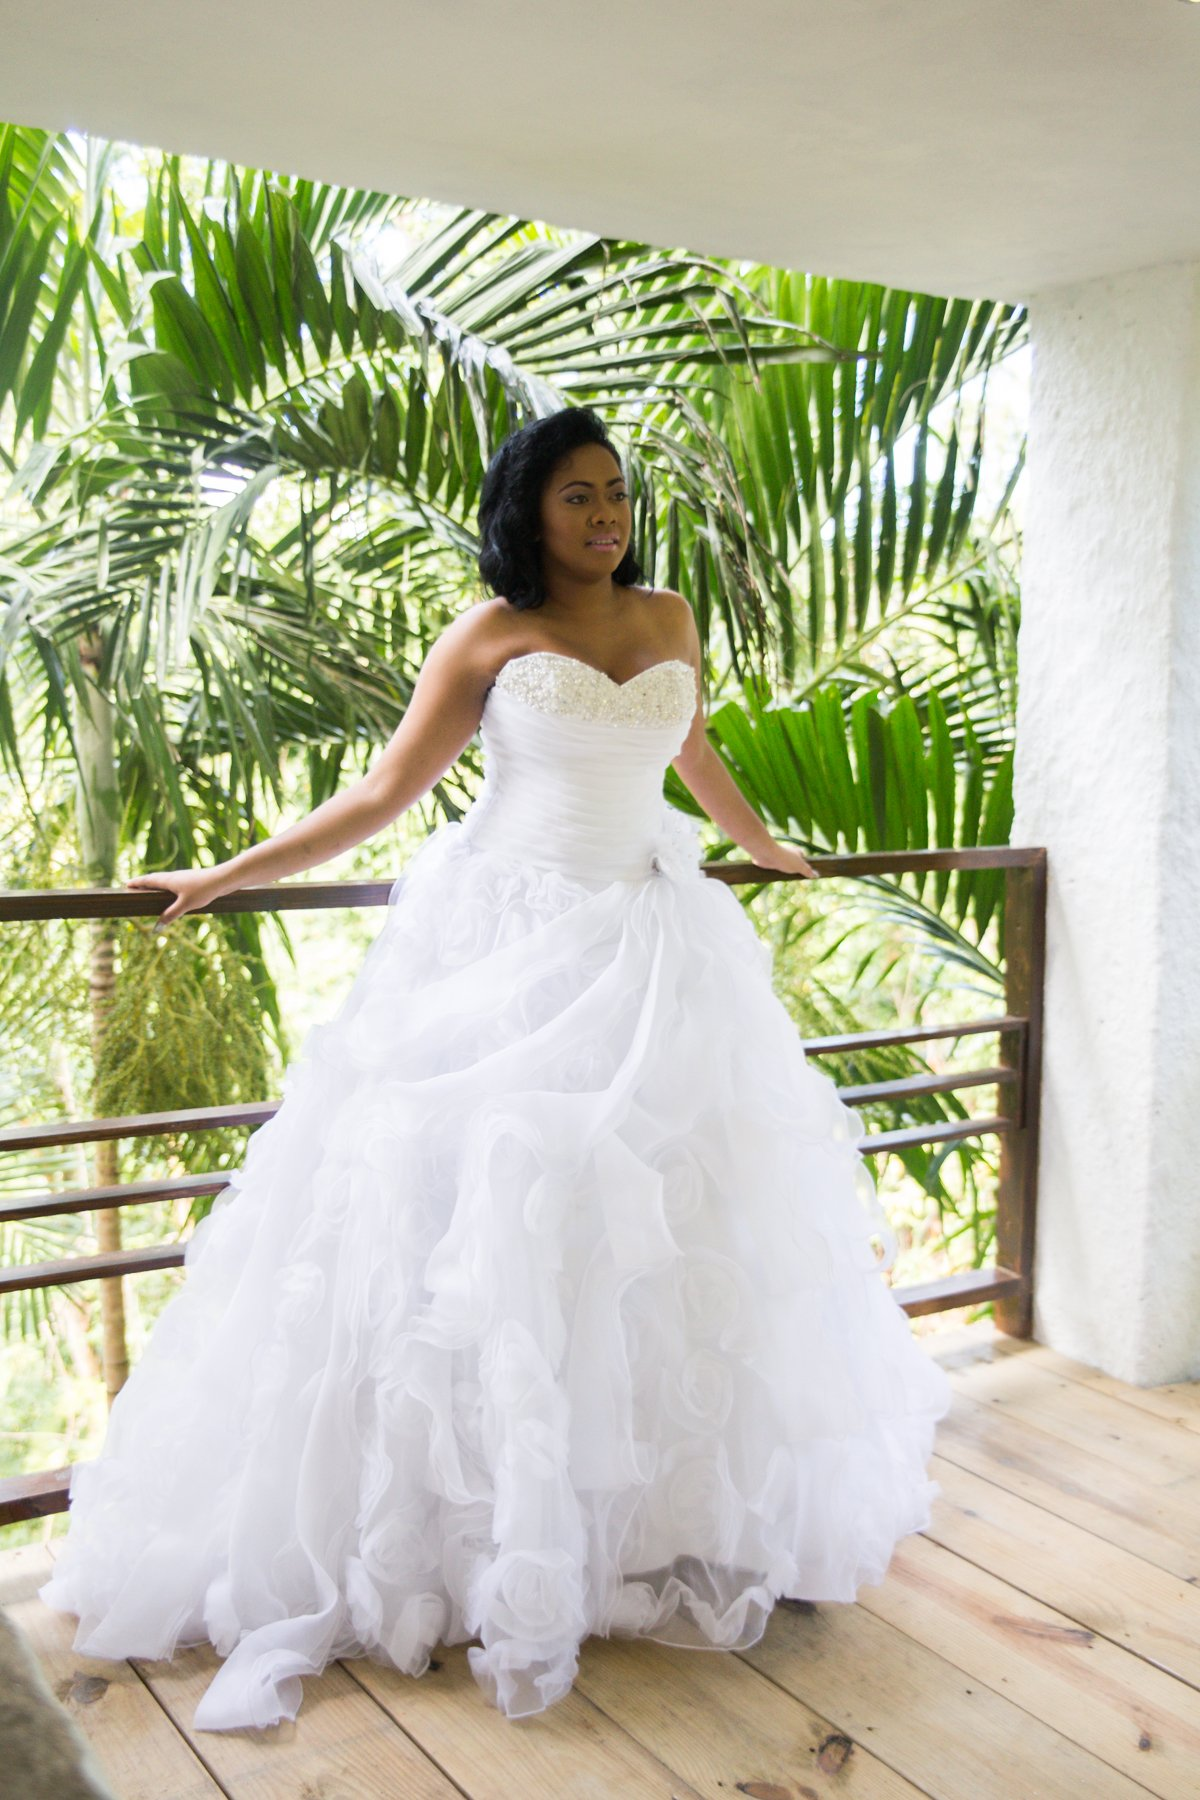 Wedding Dress For   In Jamaica : Jamaican wedding dresses dress